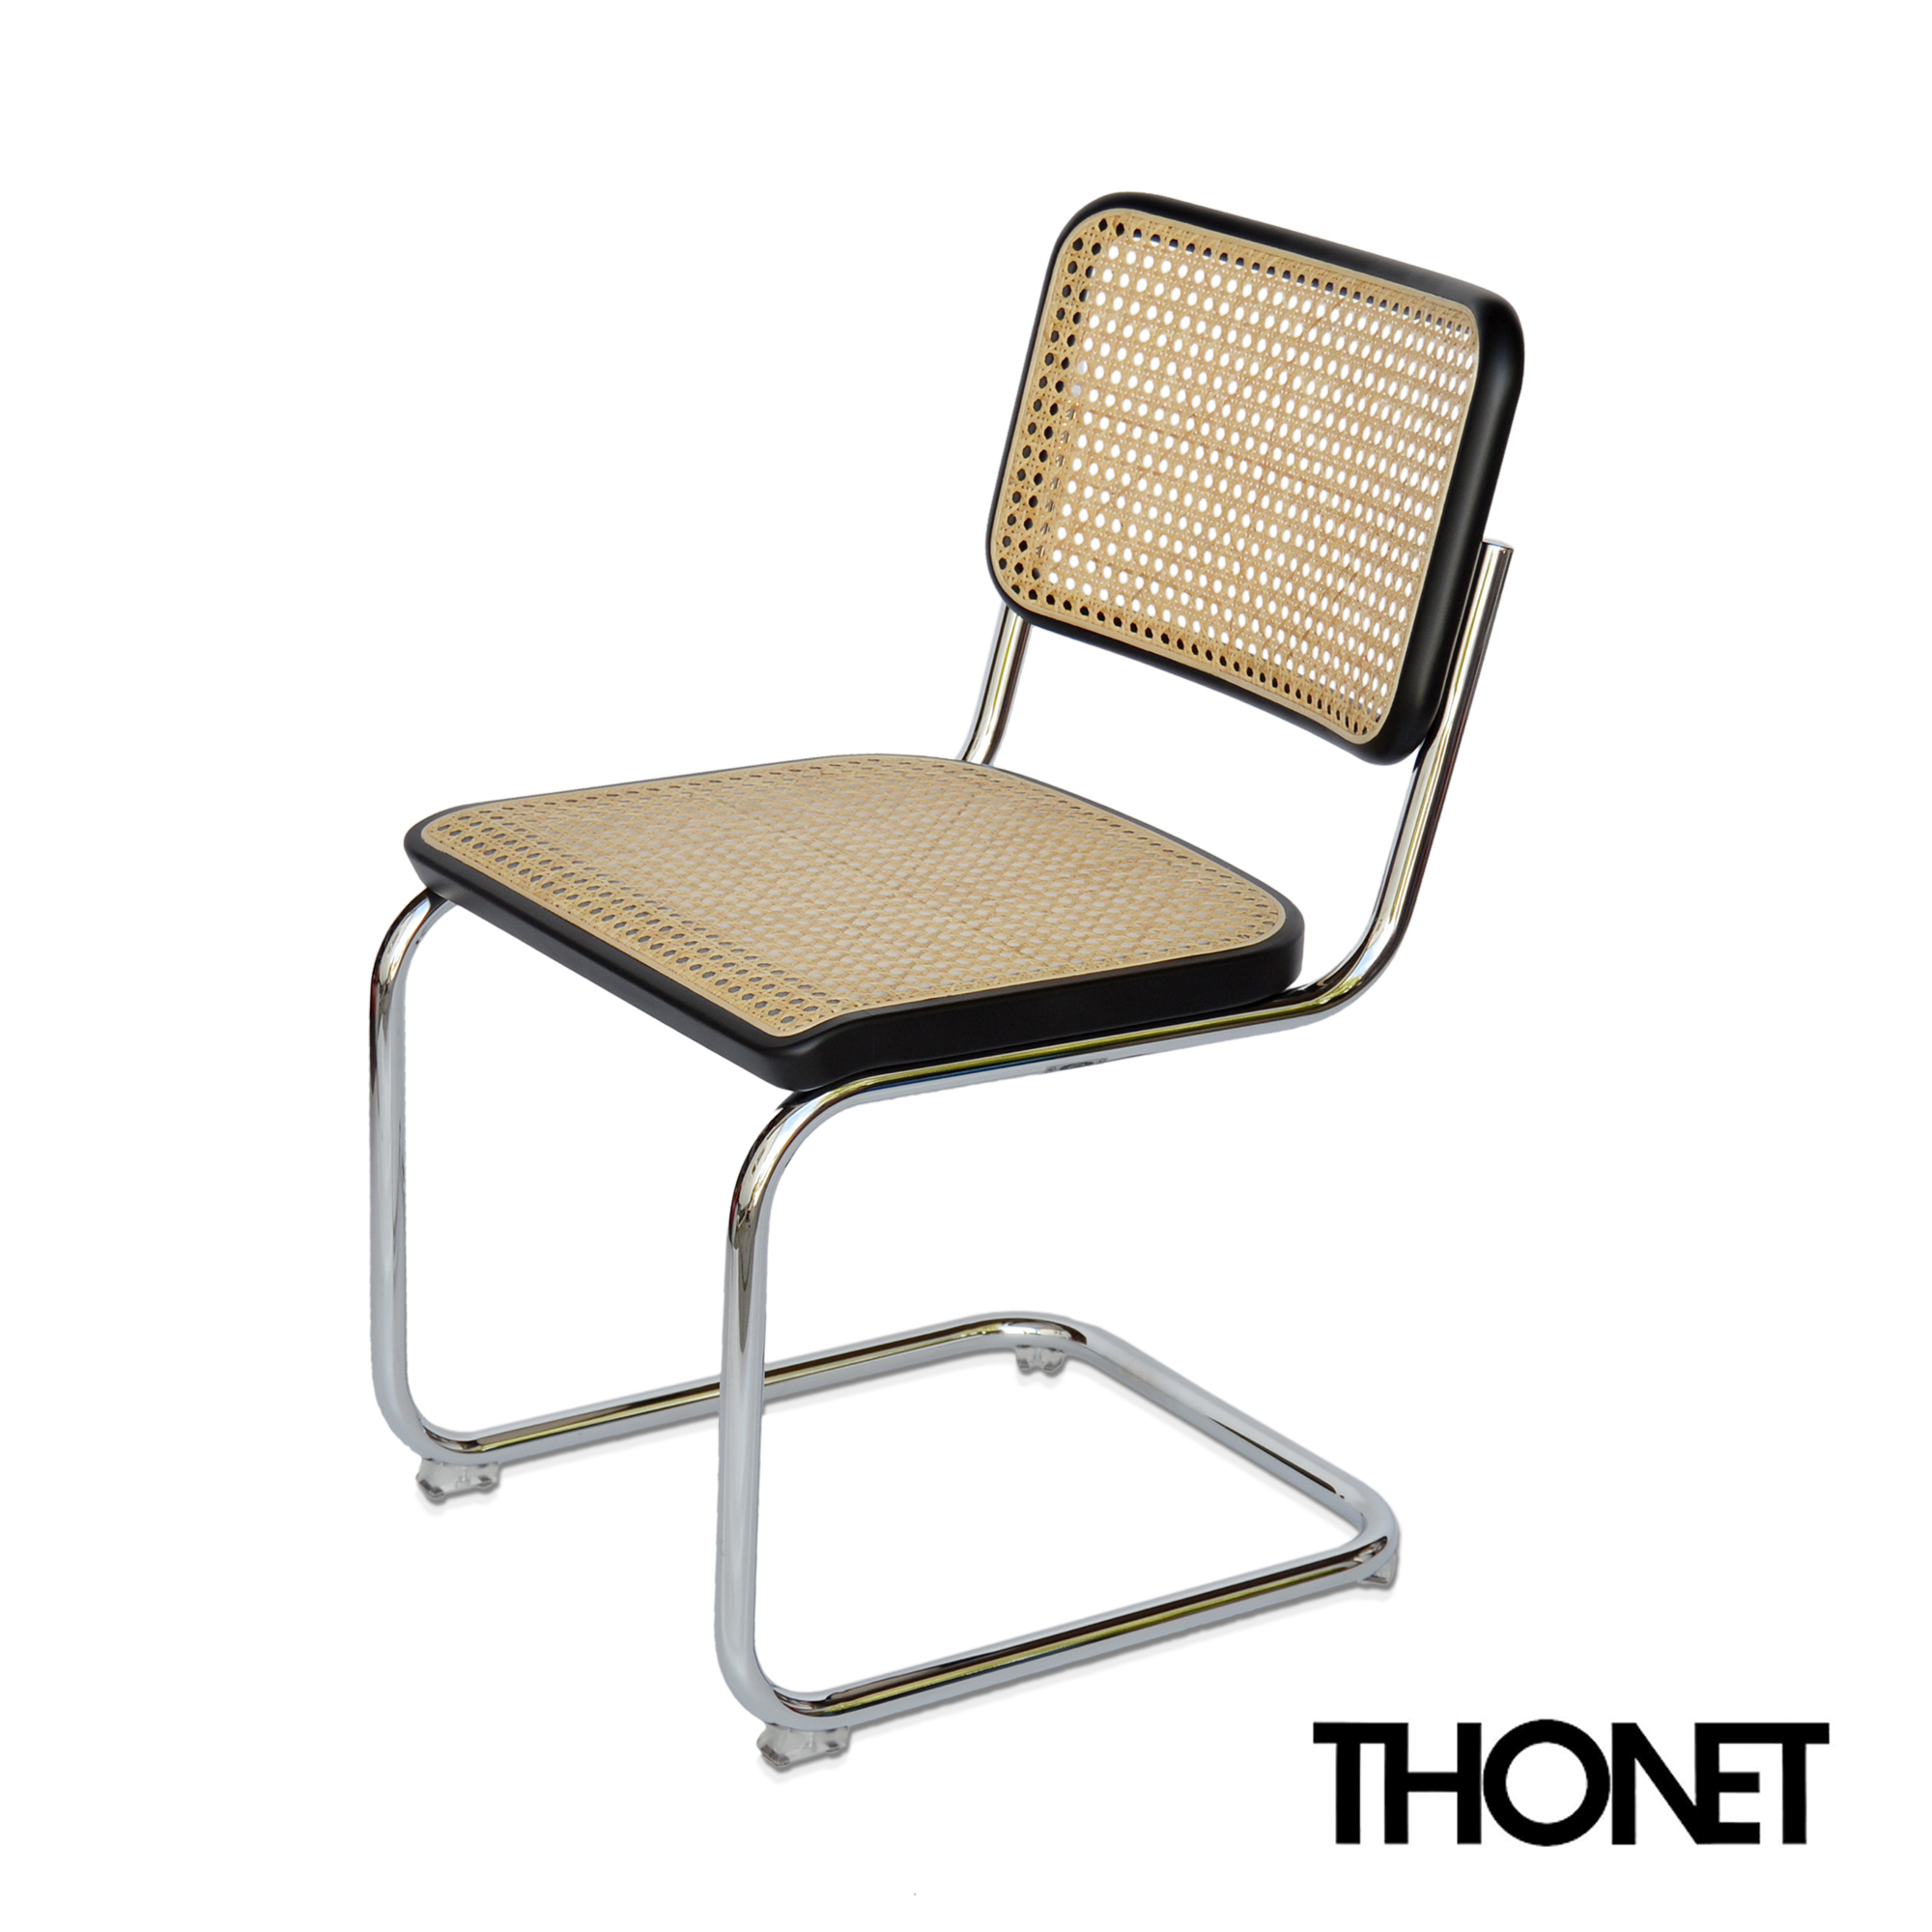 thonet s 32 by marcel breuer mart stam im design sortiment midmodern. Black Bedroom Furniture Sets. Home Design Ideas